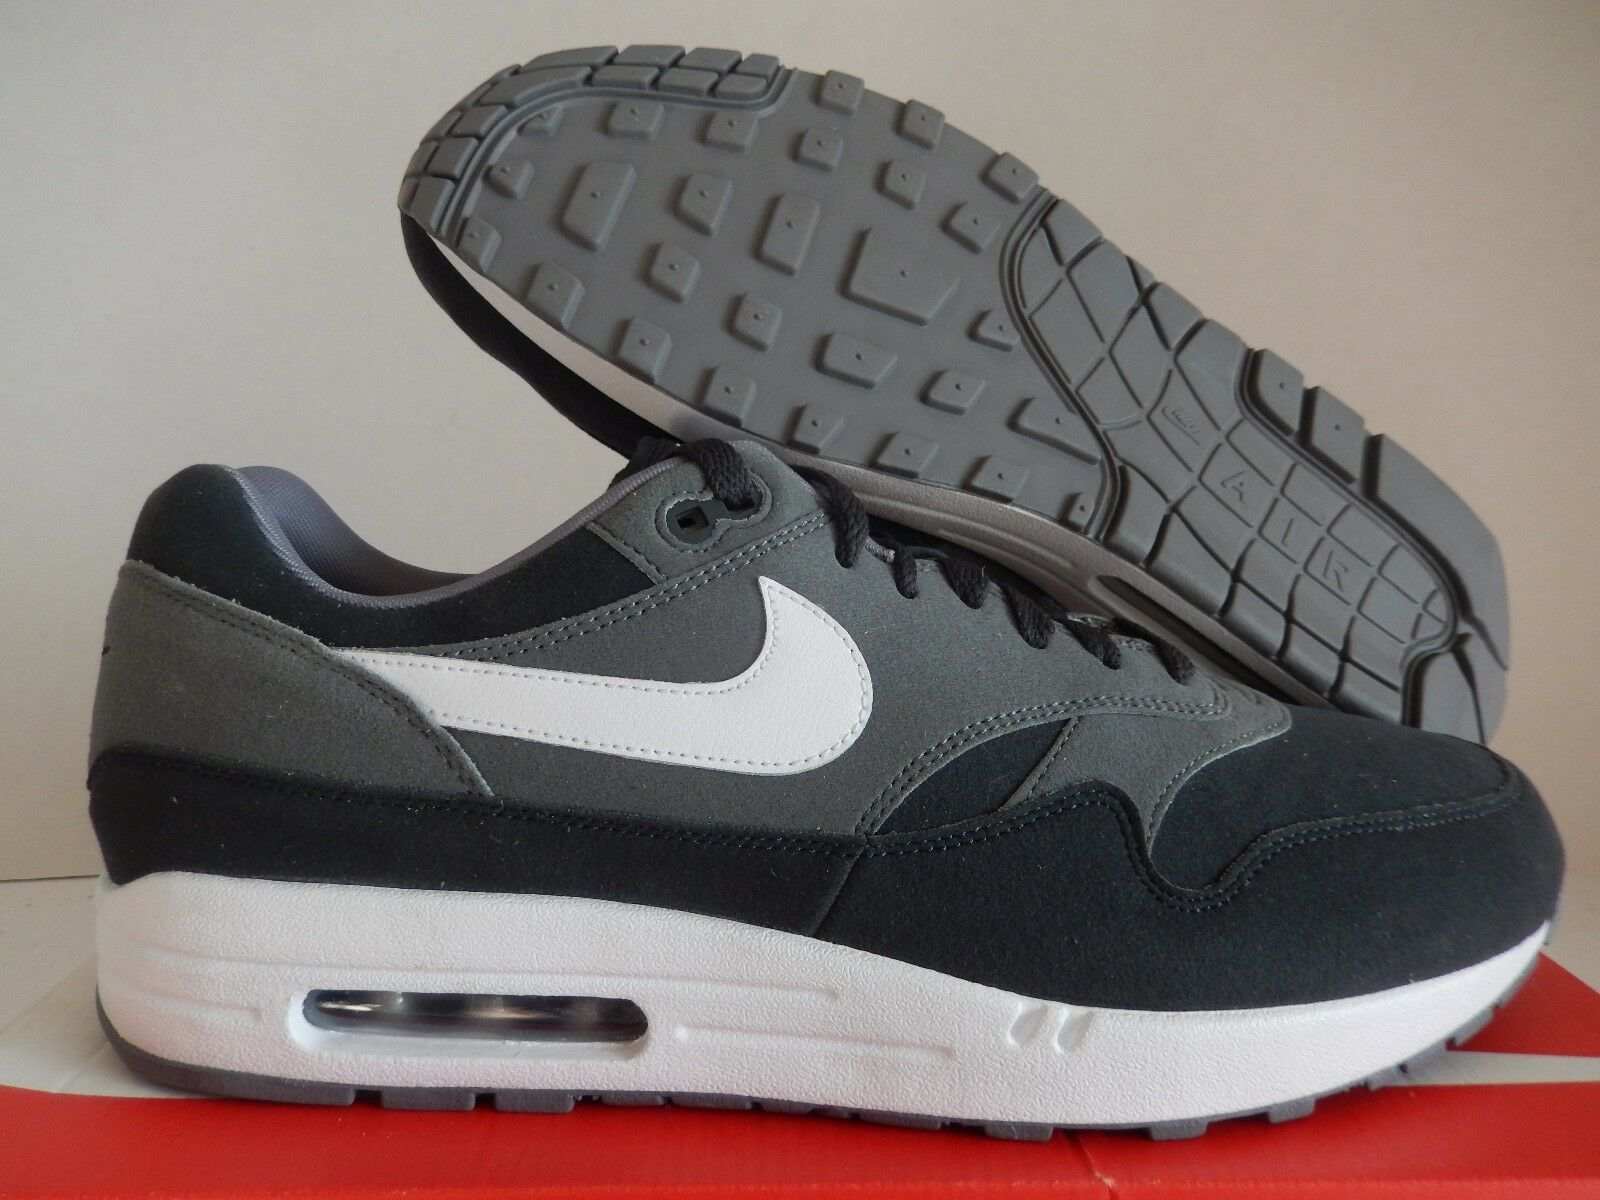 NIKE AIR MAX 1 ID BLACK-GREY-WHITE Price reduction The latest discount shoes for men and women